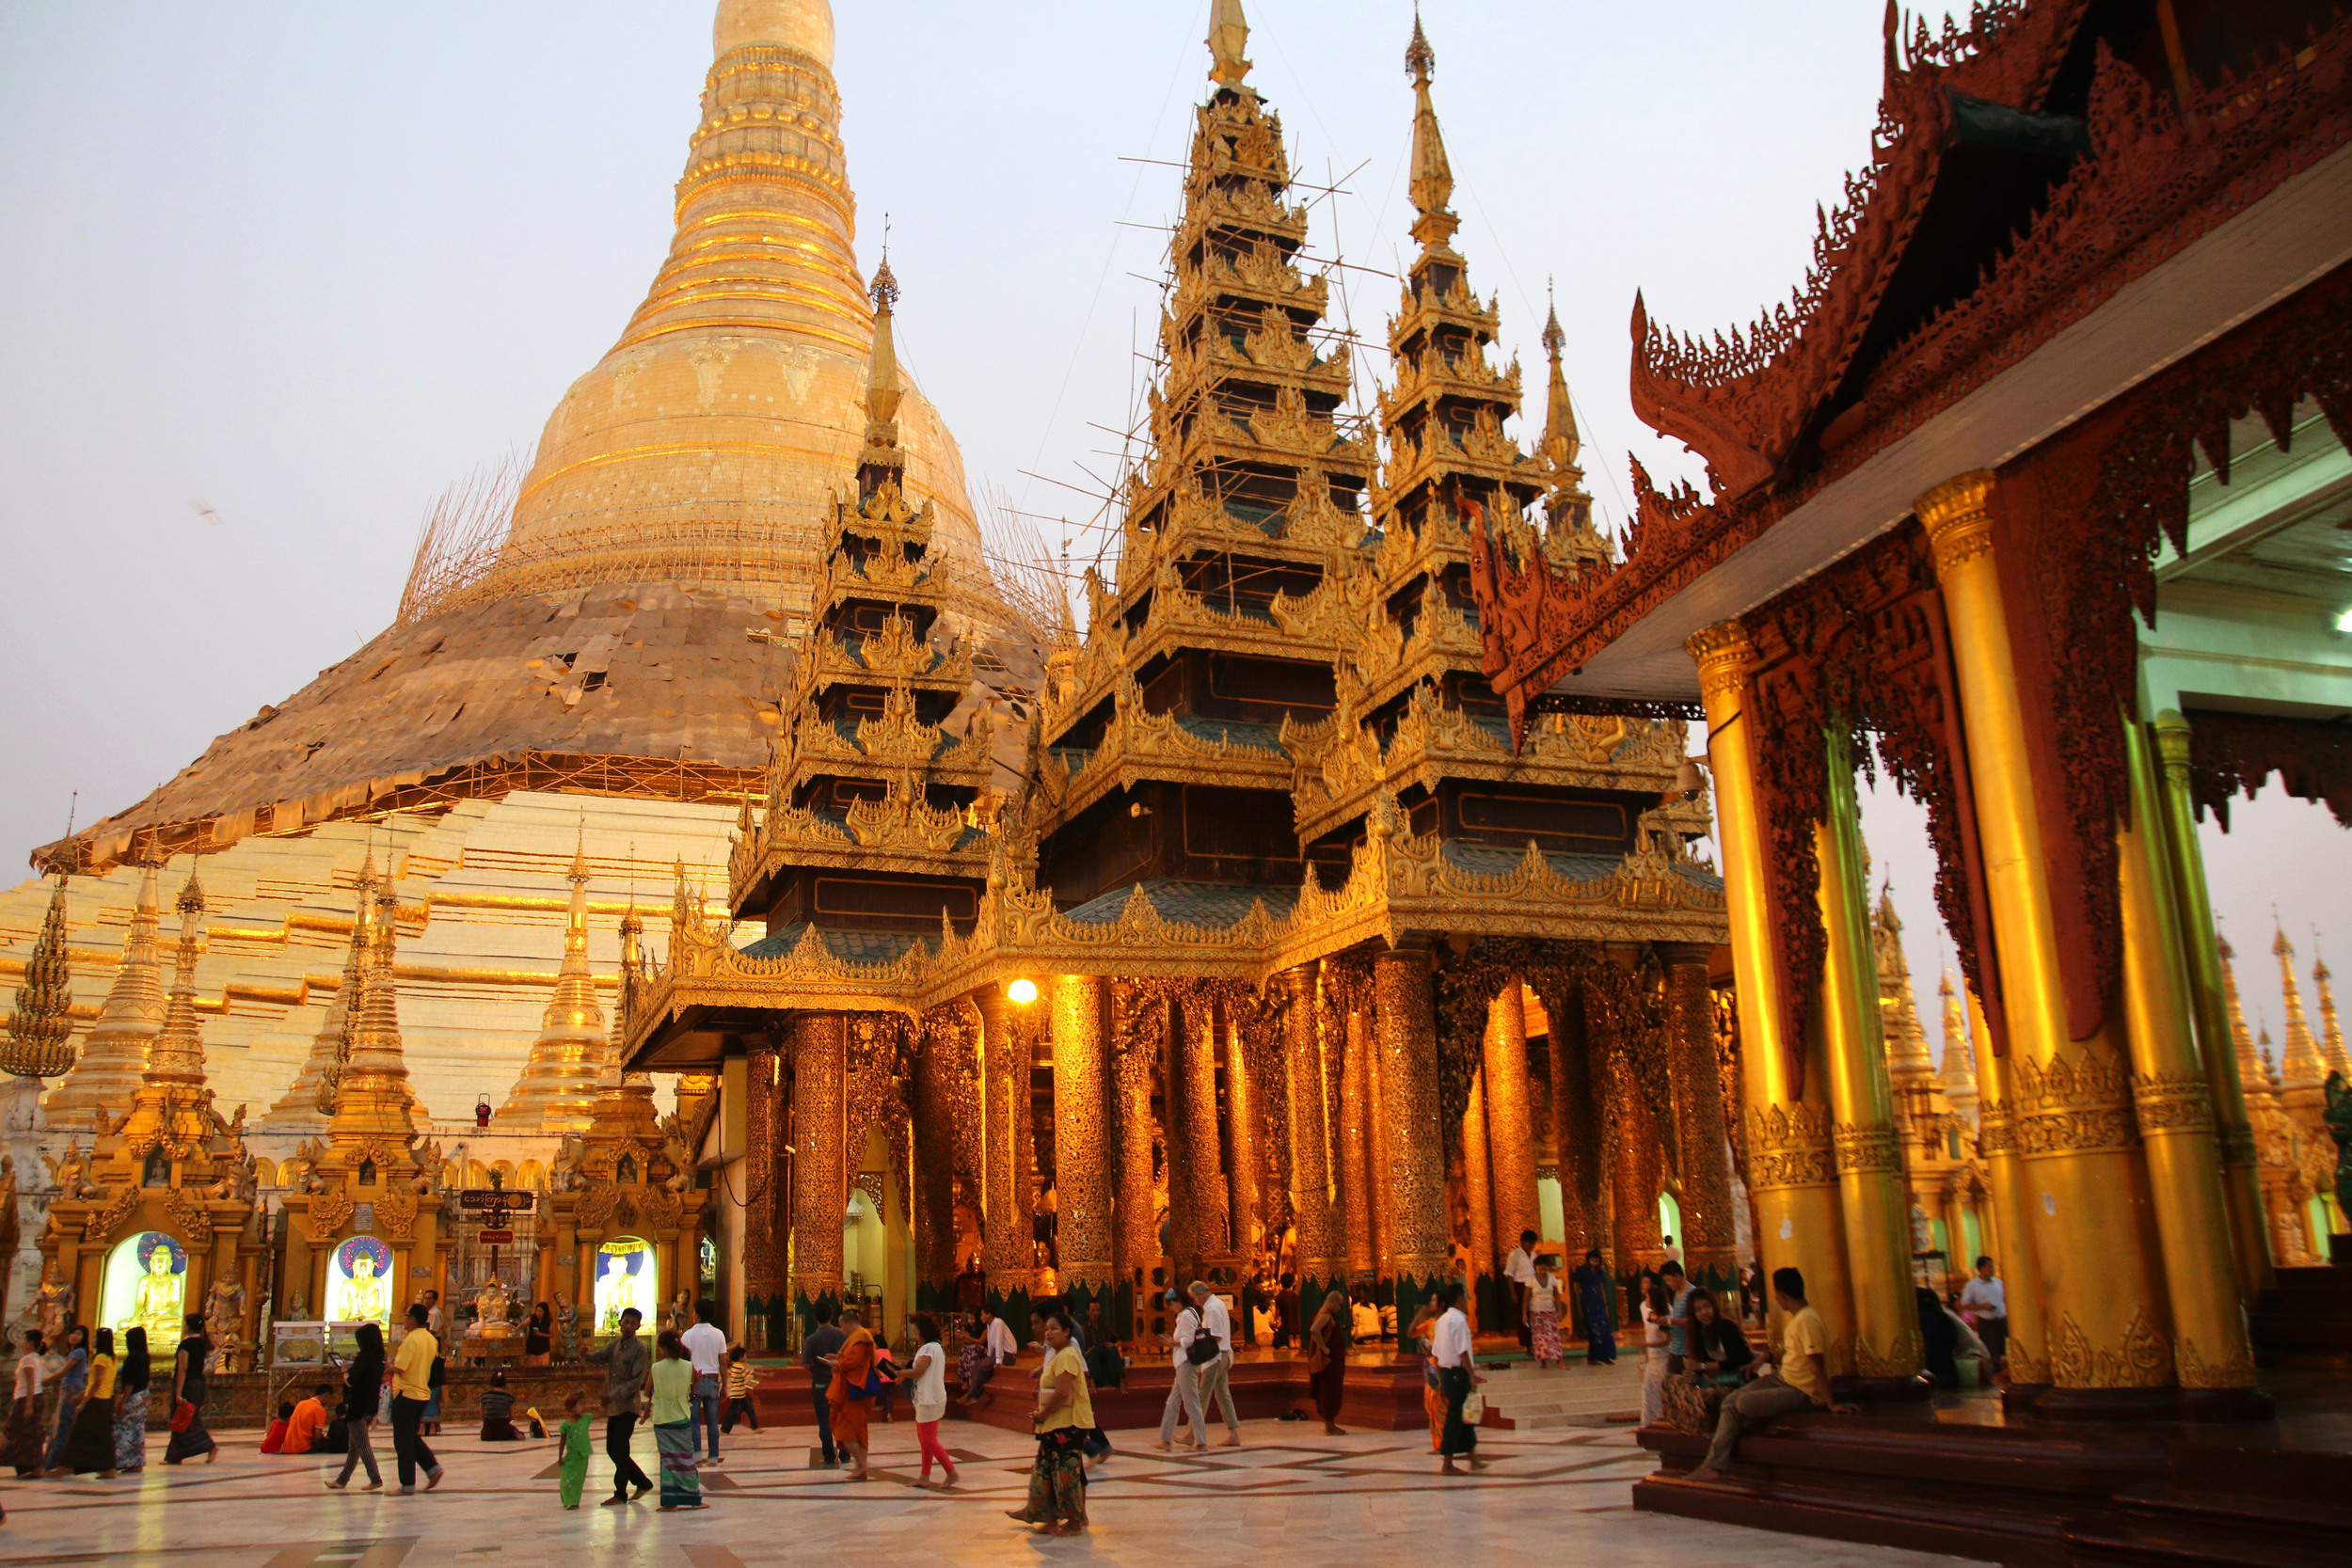 Shwedagon Pagoda in Yangon, Myanmar, is the most famous Buddhist temple in the country.